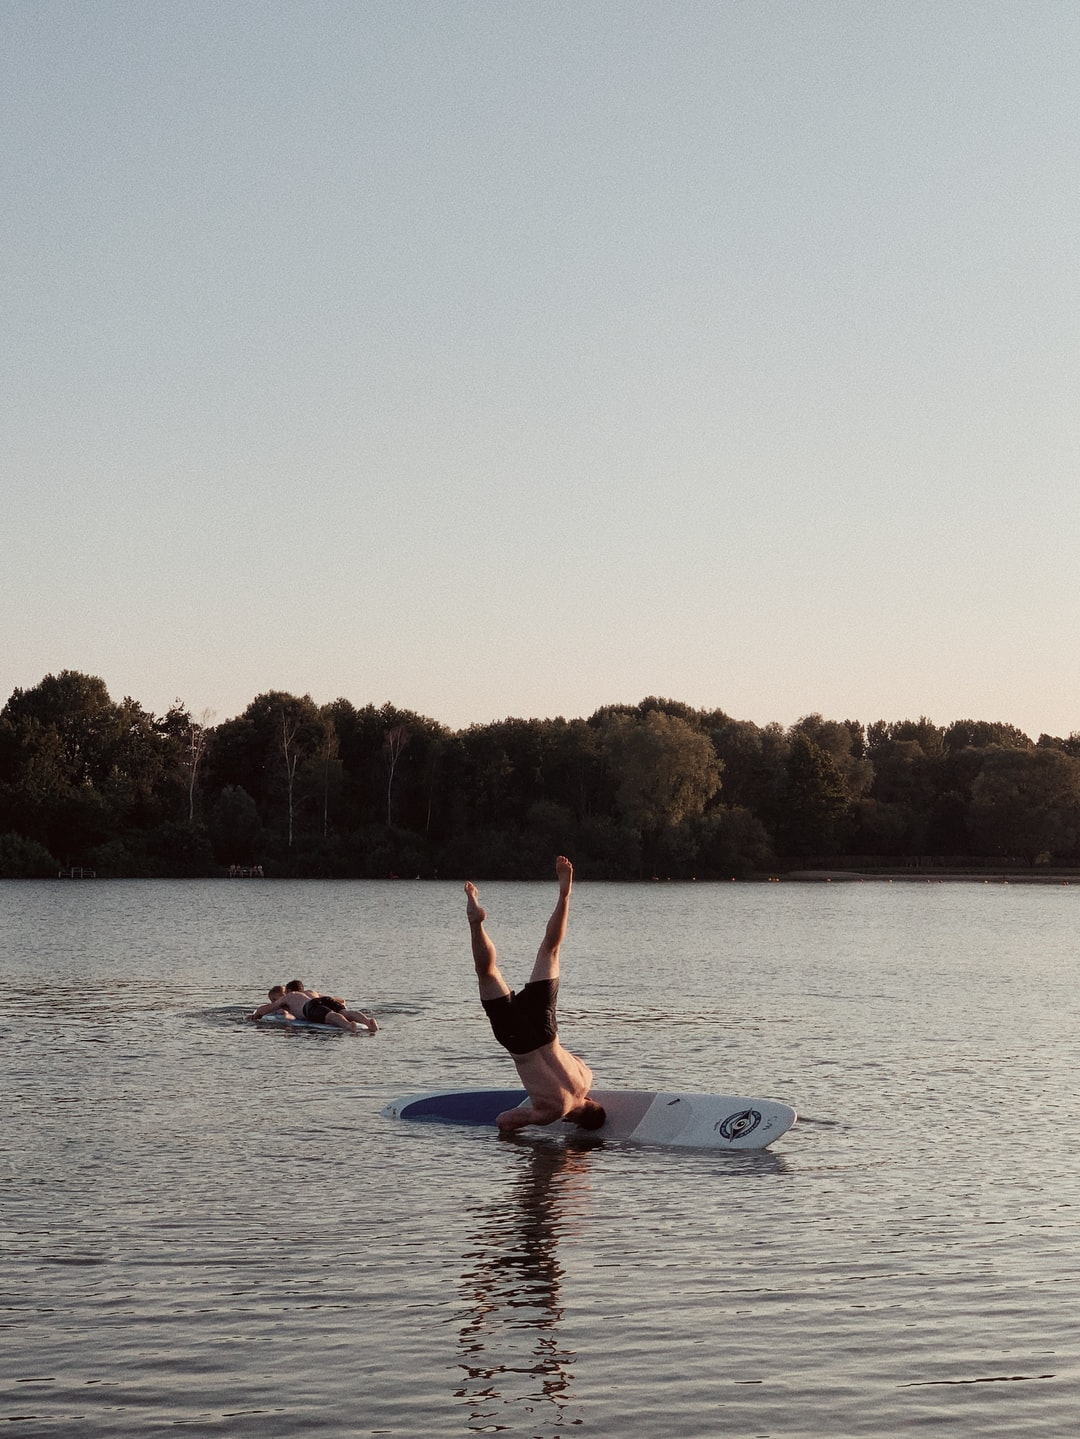 On our team retreat Niels tried doing yoga on a paddleboard. Let's say it did not end very well.